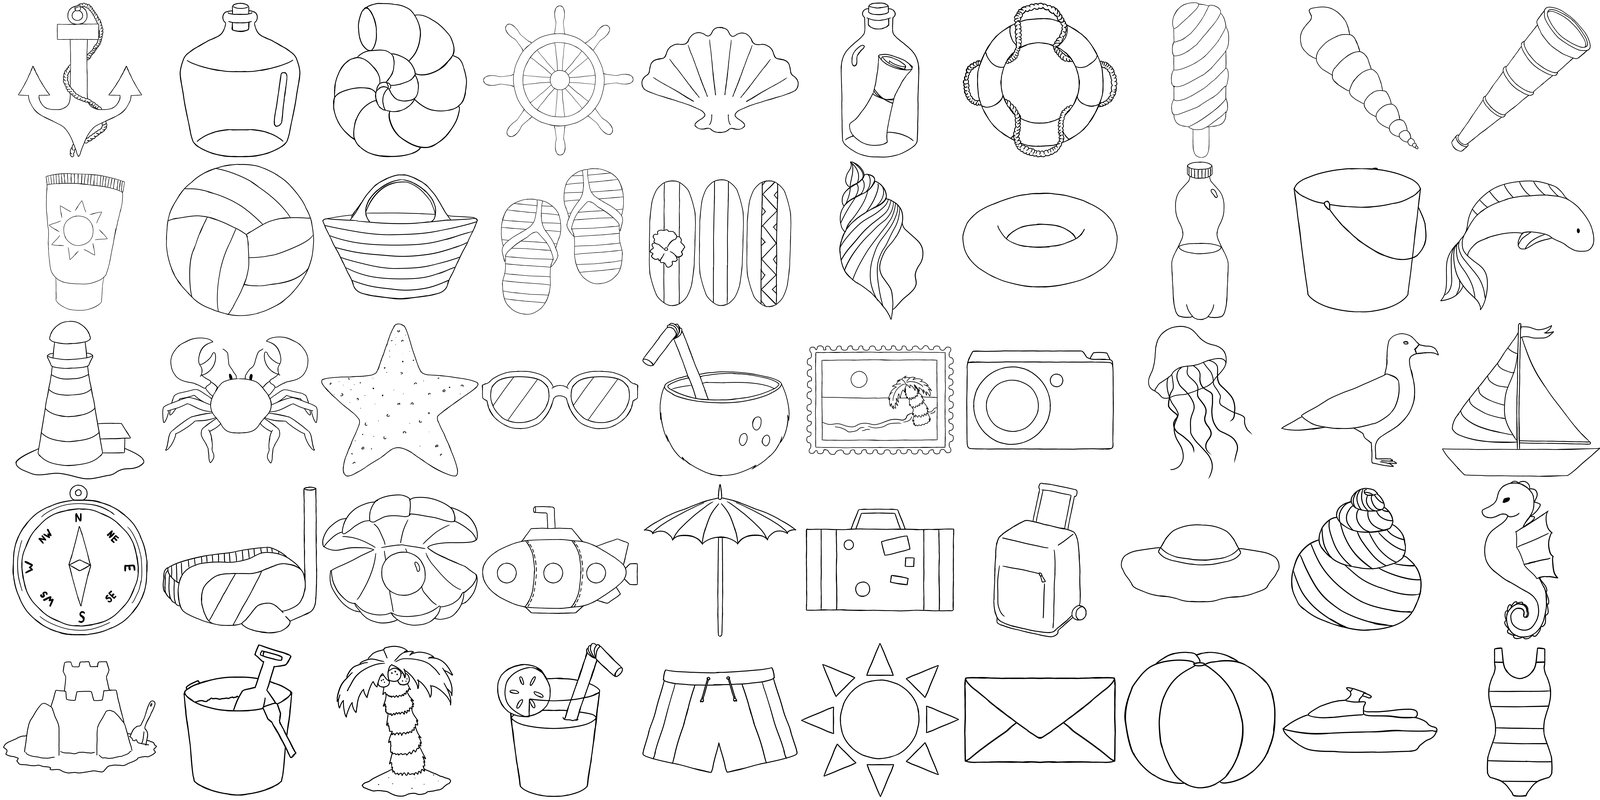 Sea Holidays, Travel - Outline Bundle Drawings Illustration